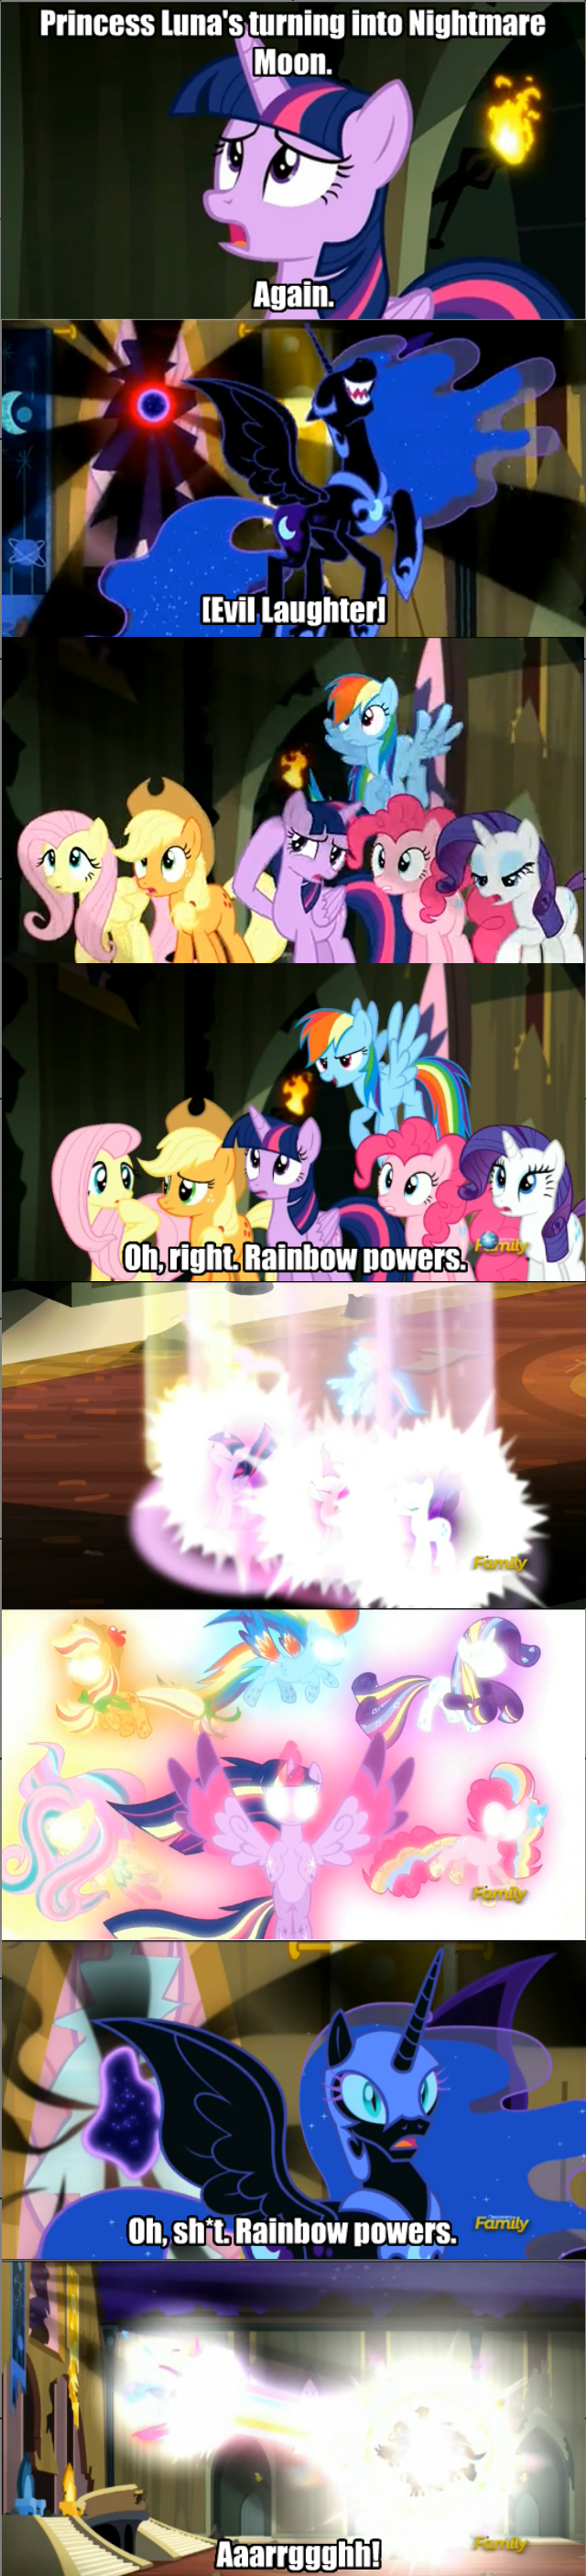 applejack,nightmare moon,twilight sparkle,pinkie pie,rarity,fluttershy,rainbow dash